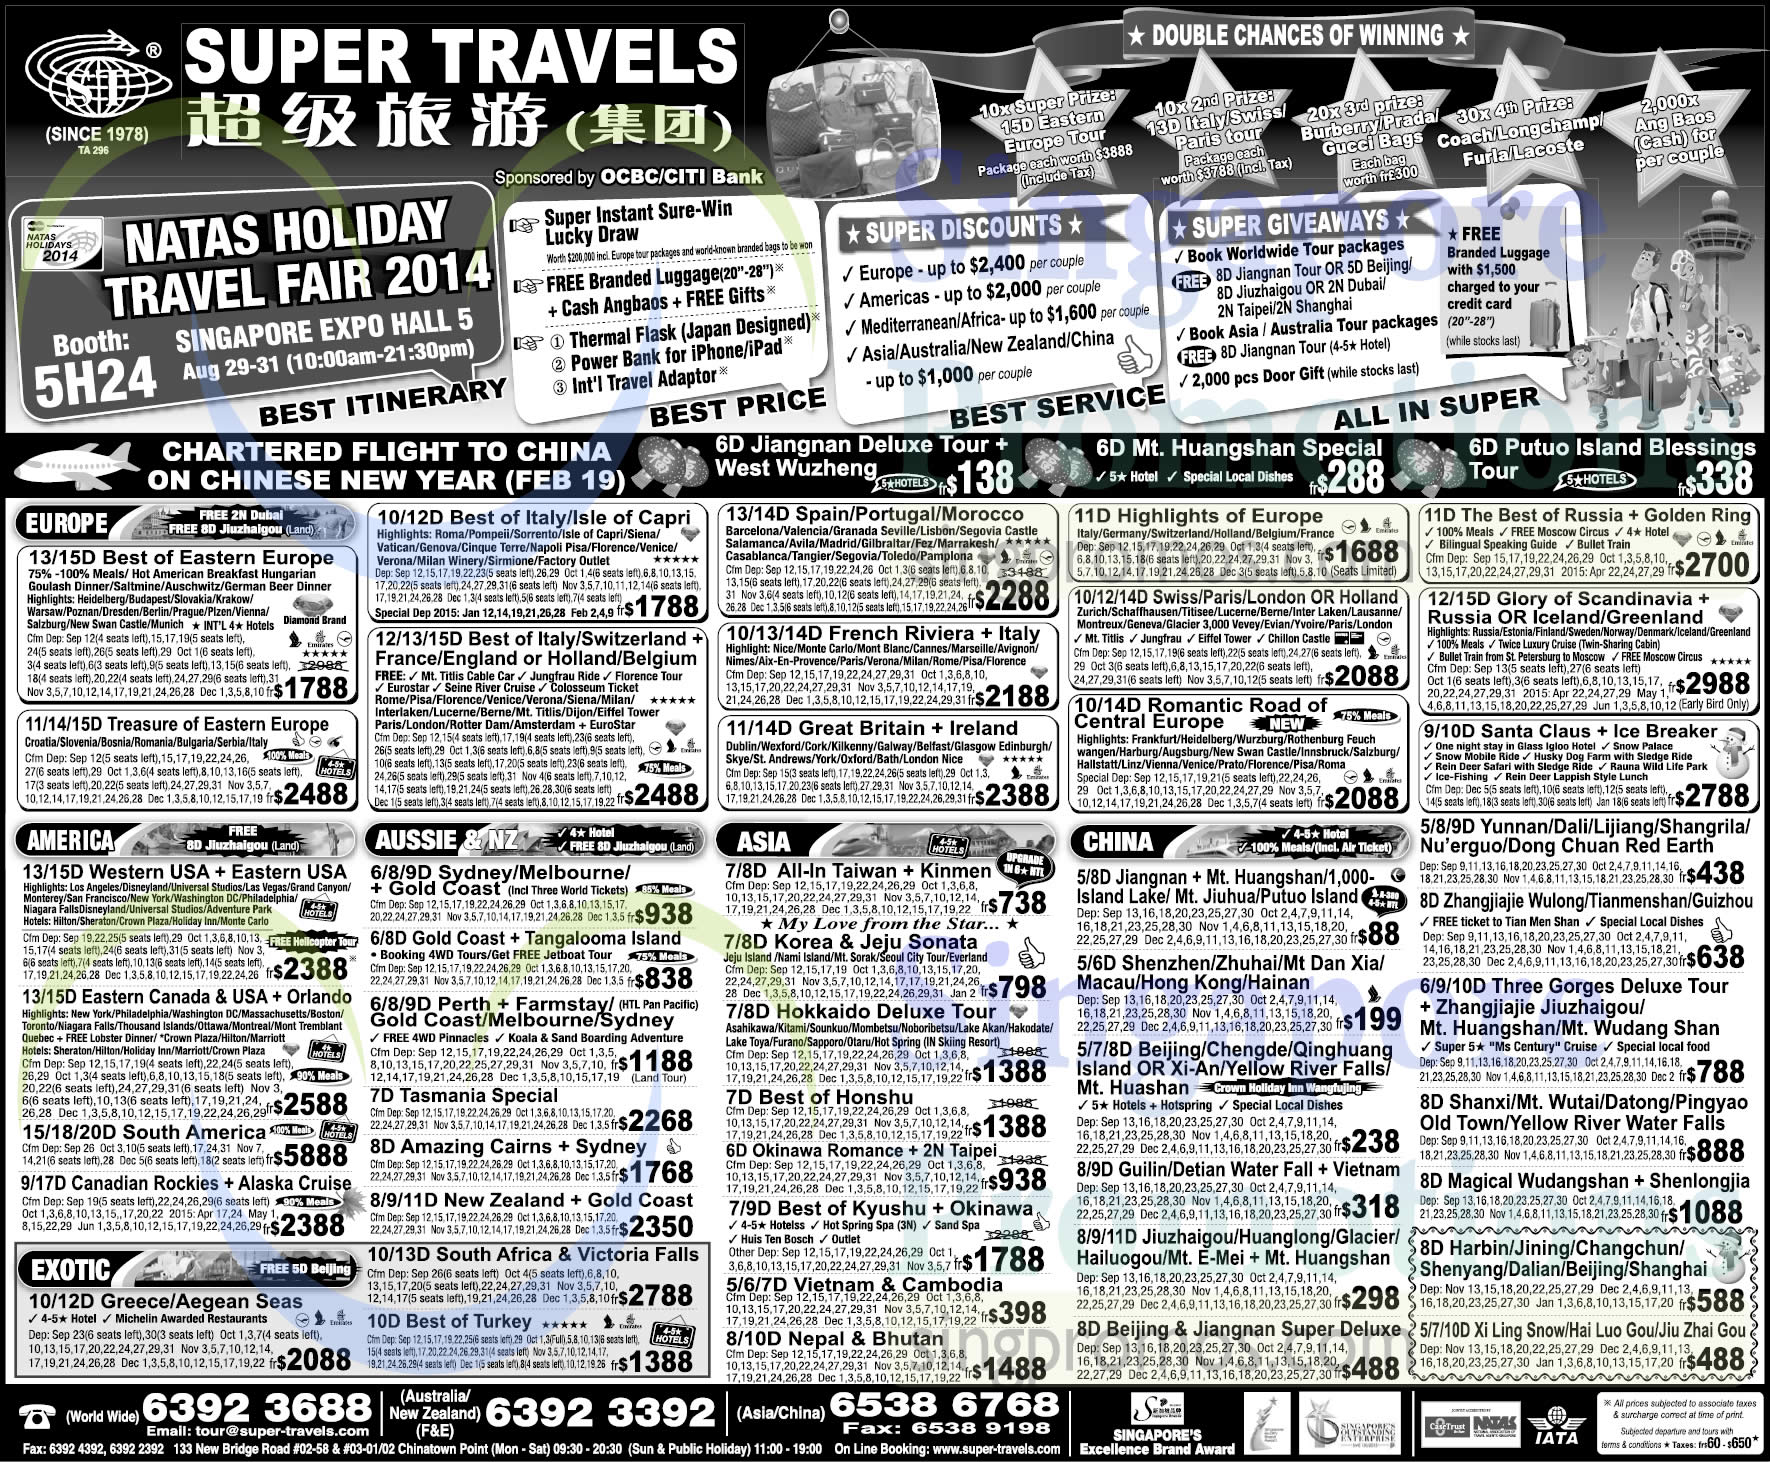 28 Aug Super Travels Europe, America, Exotic, Aussie, Asia, China